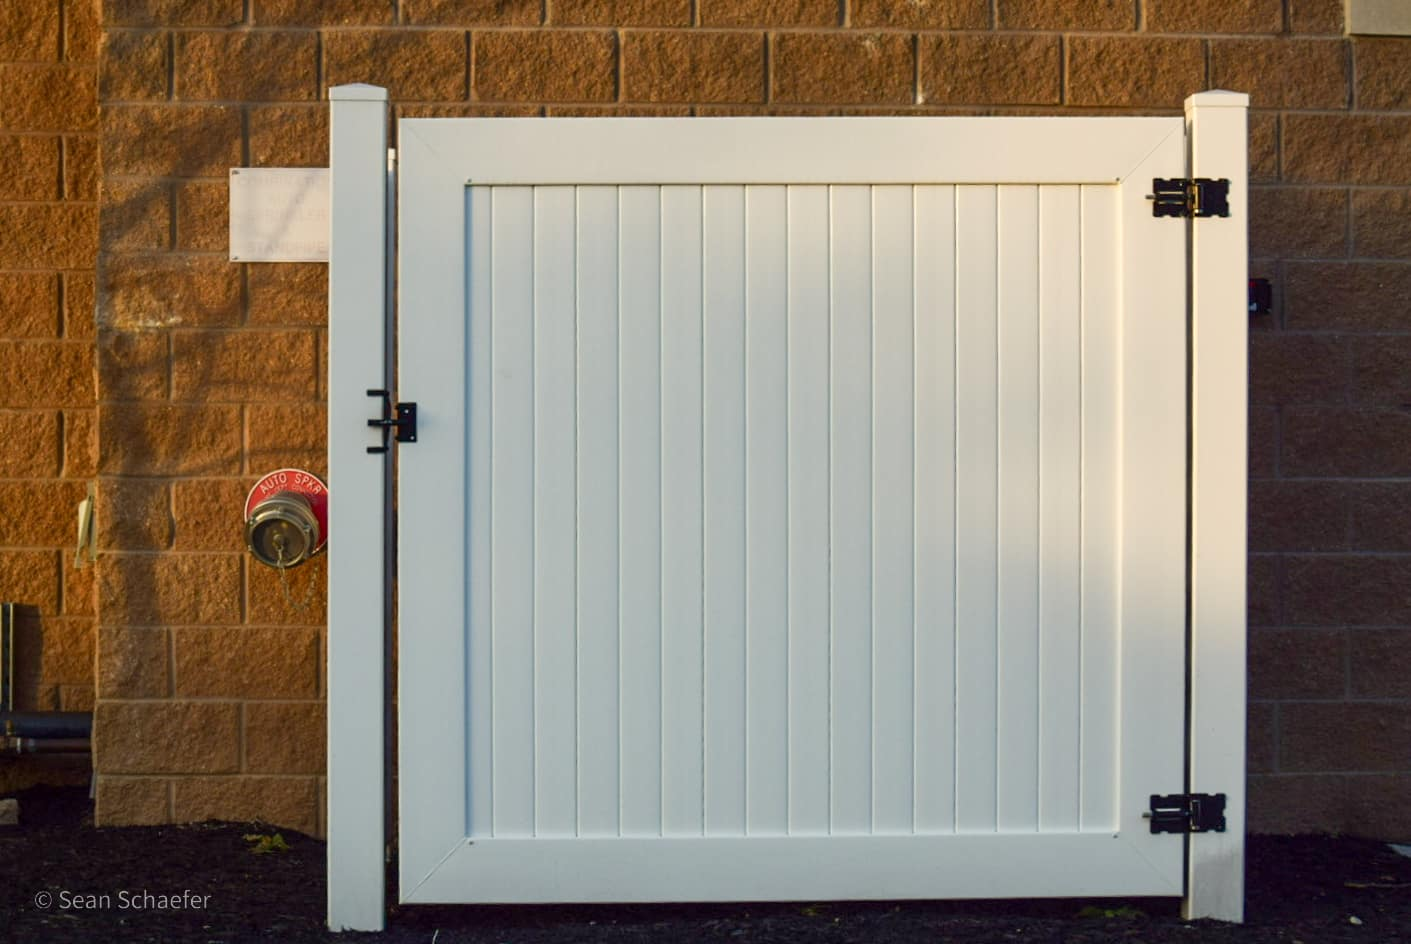 Image of commercial PVC / vinyl HVAC enclosure and gate at Residence Inn